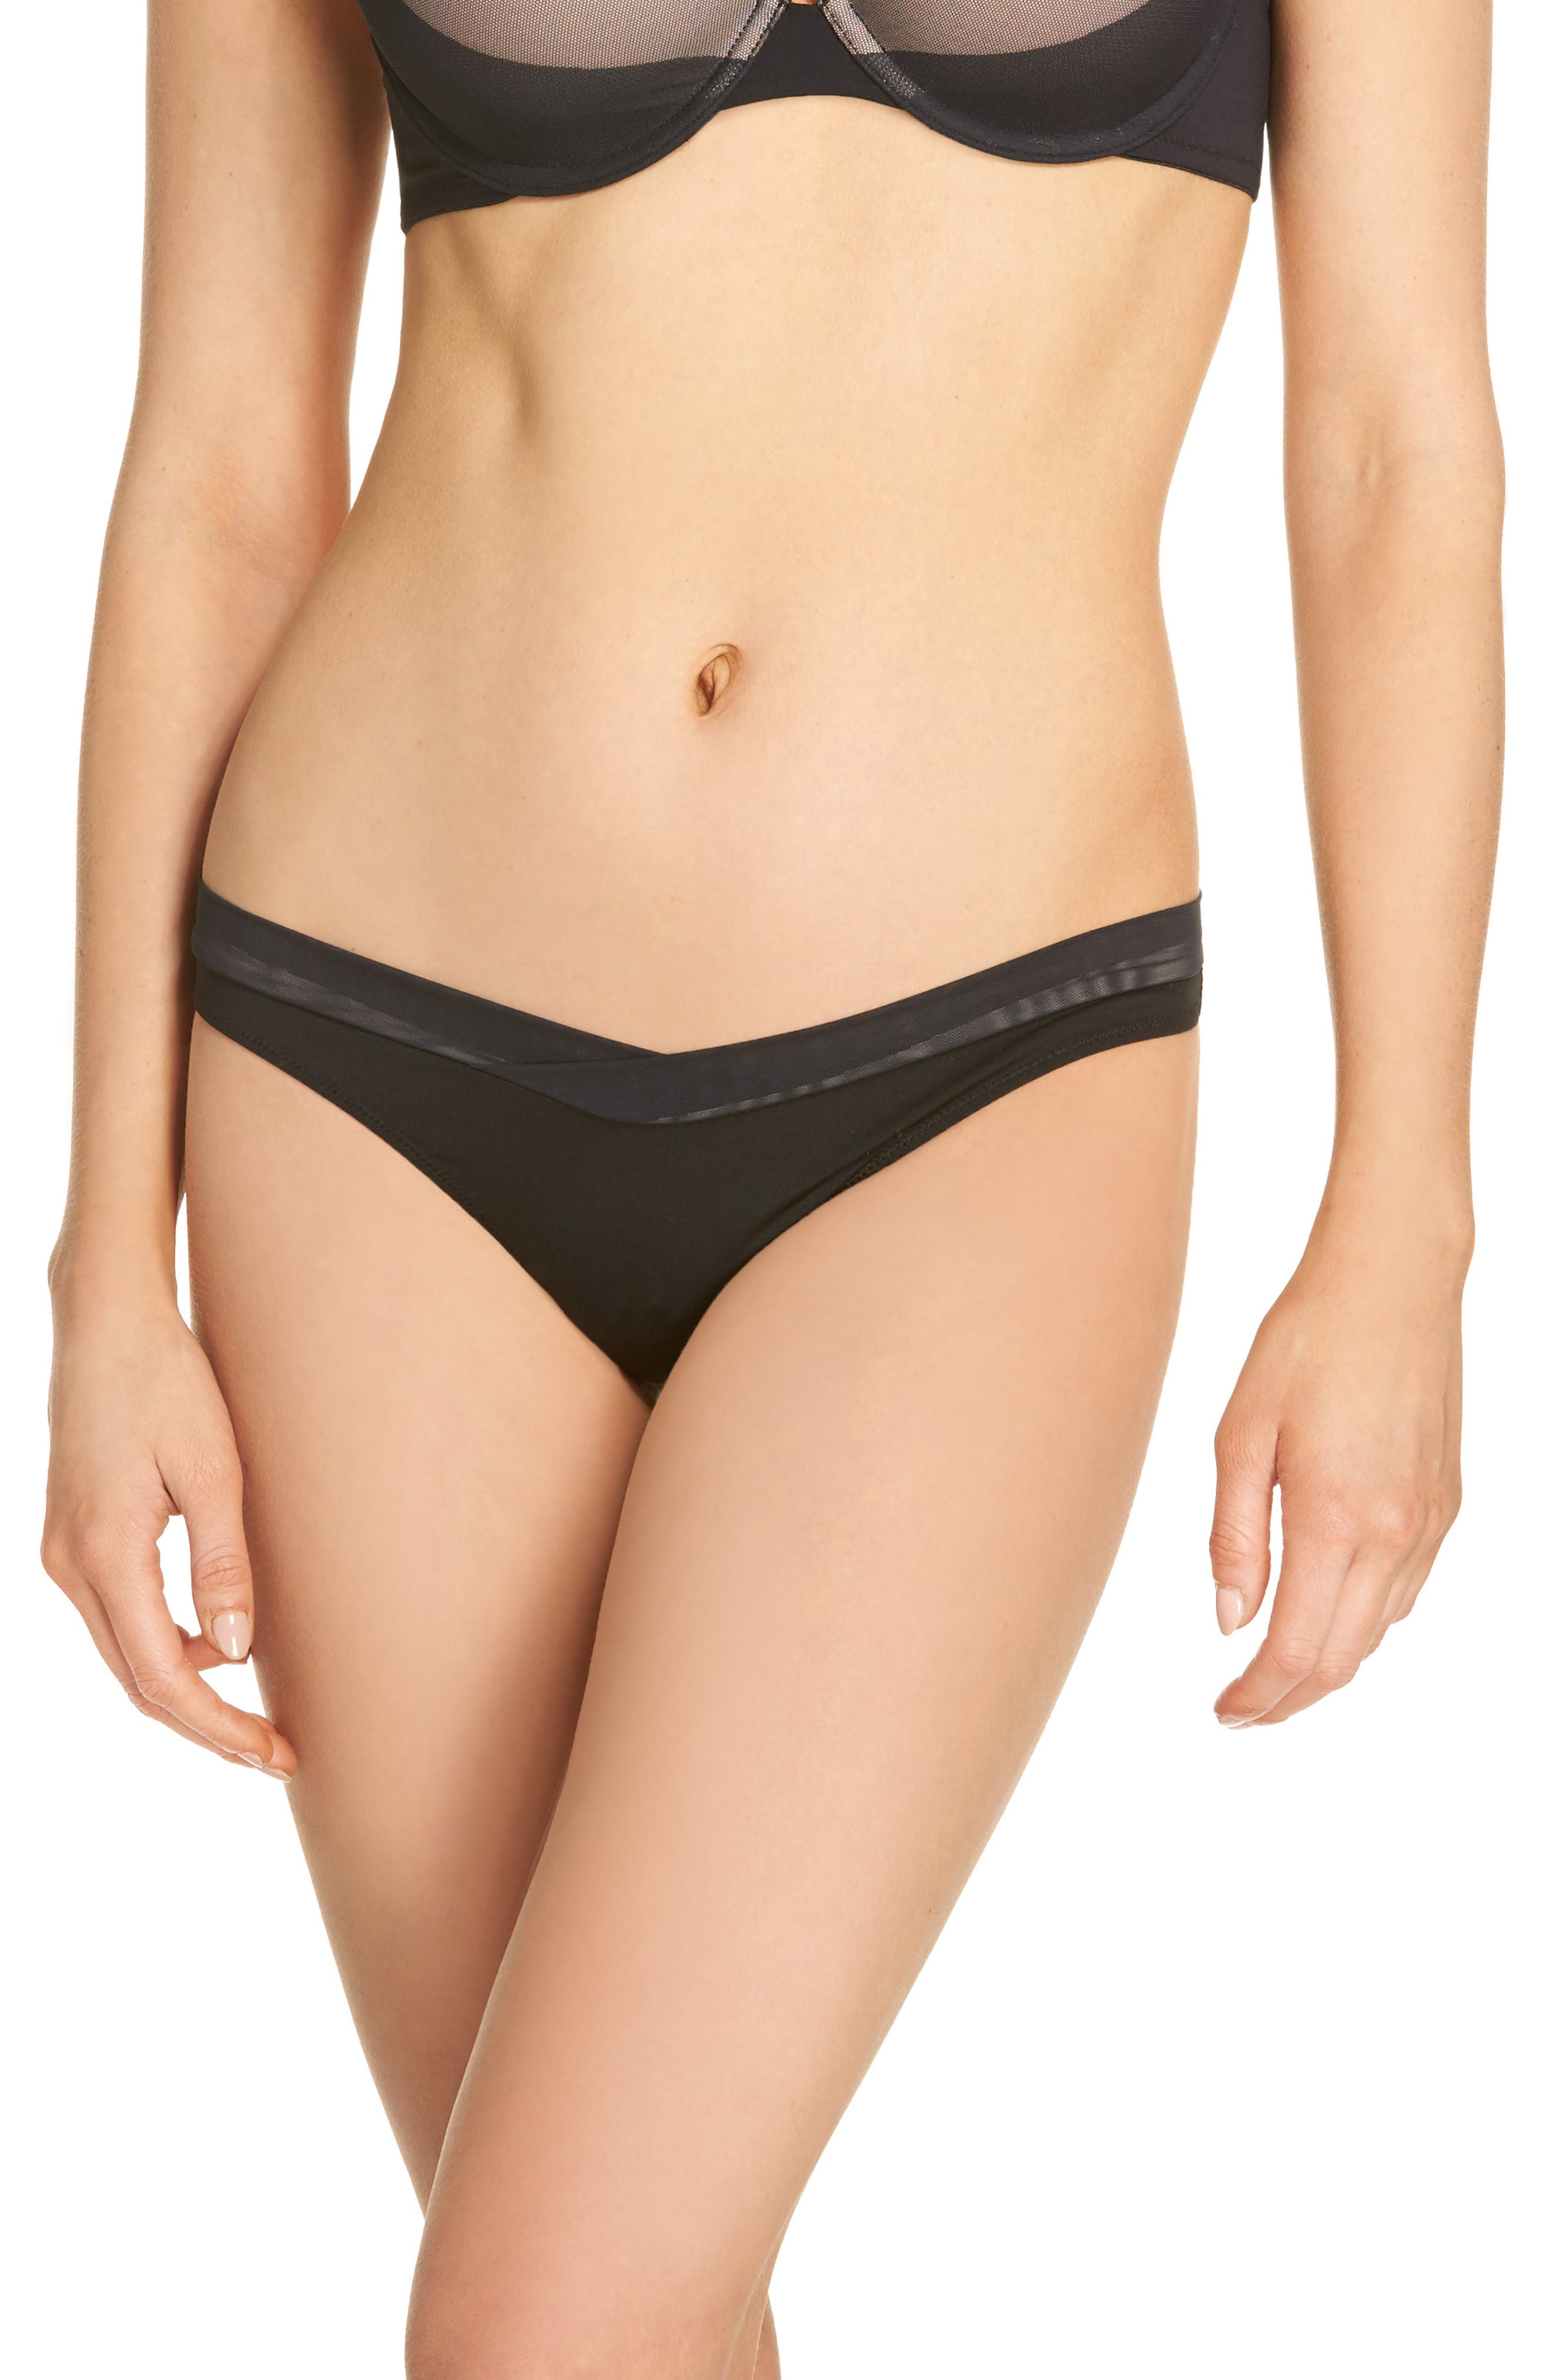 Vince Camuto Mia Thong (3 for $33)